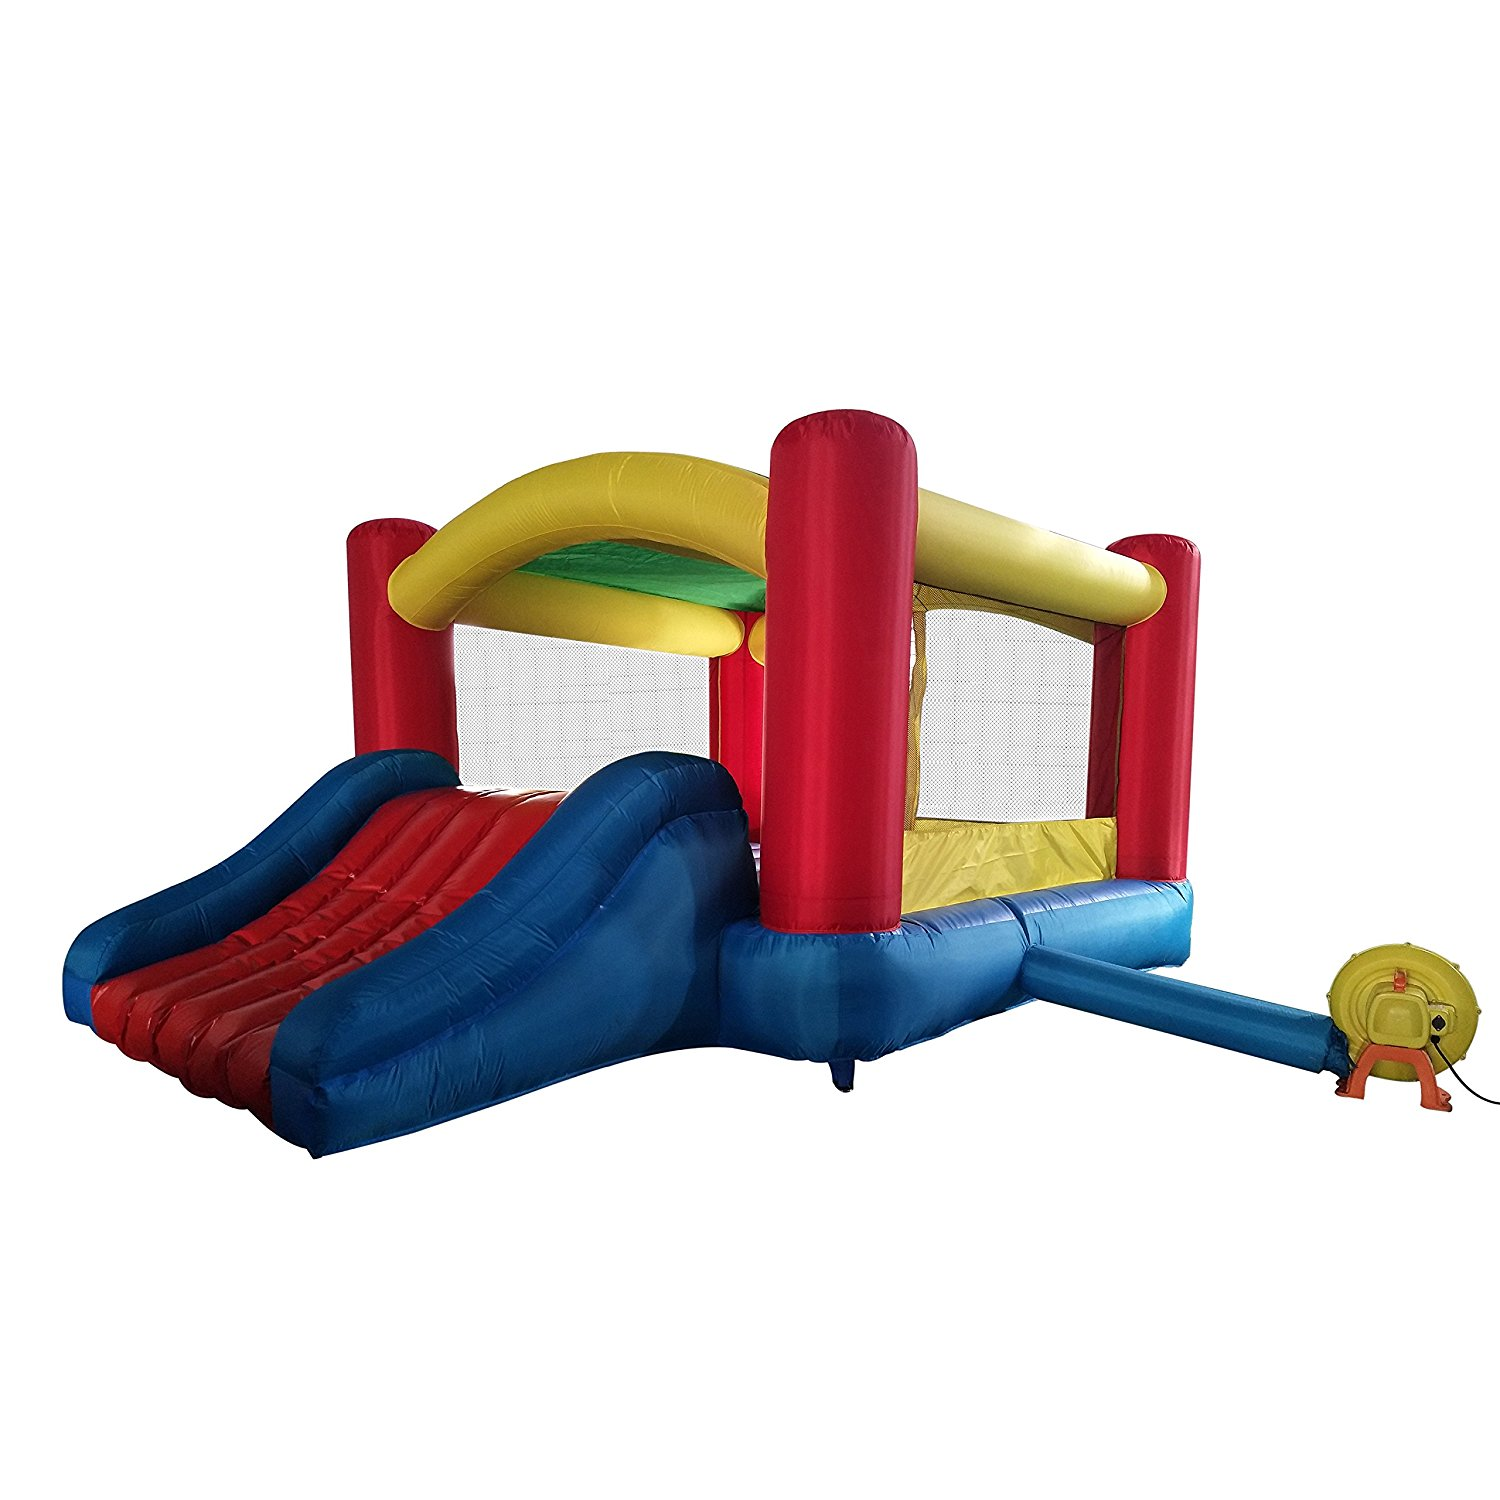 BHOUSE Inflatable Commercial Bounce House with Curved Slide and Blower